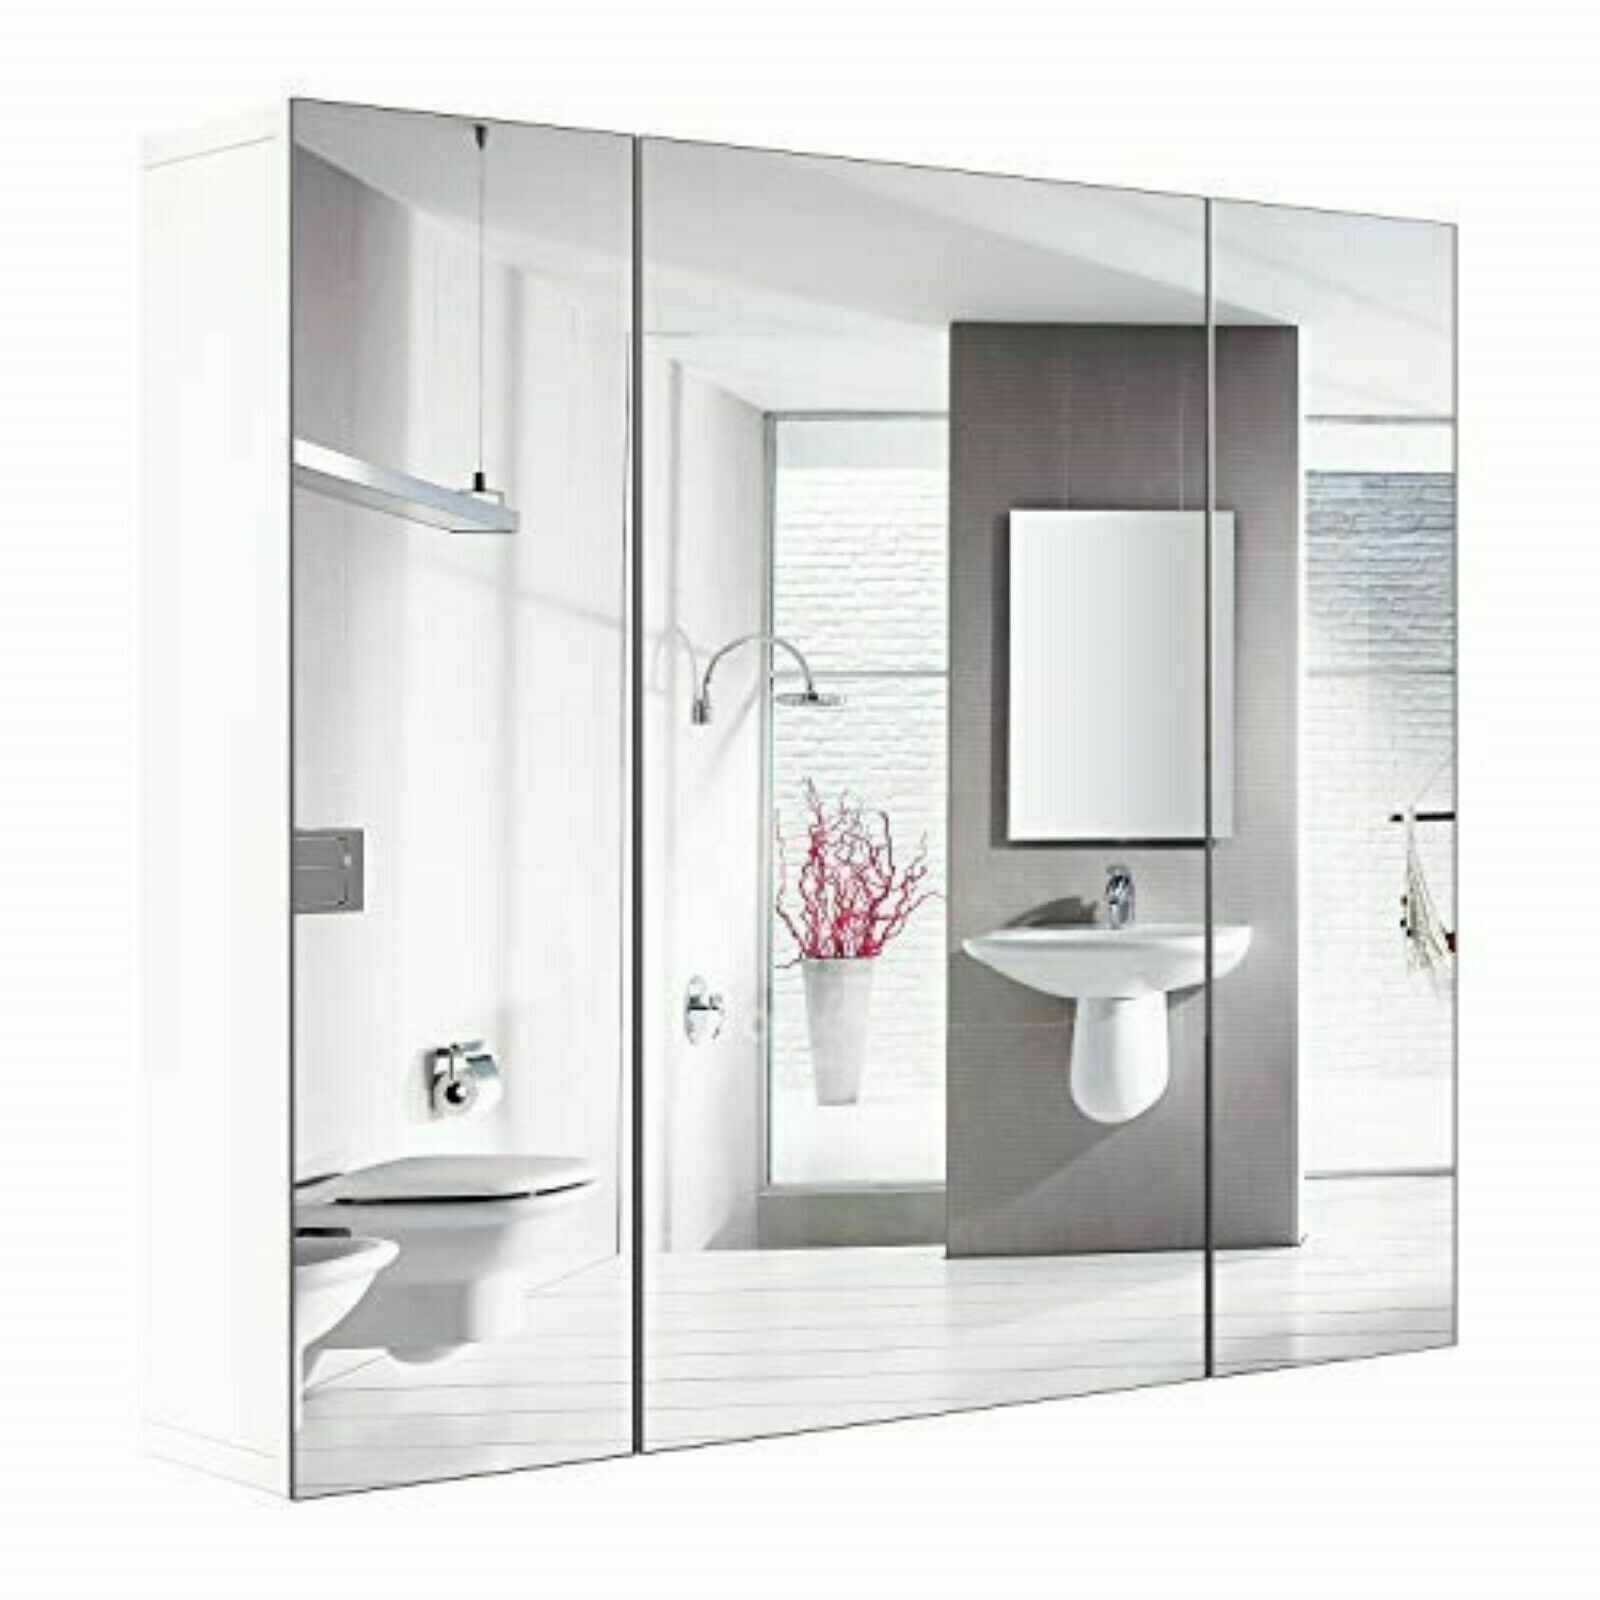 Bathroom Wall Mirror Cabinet 3 Mirror Door Kit Mirrored Medicine Toilet Storage For Sale Online